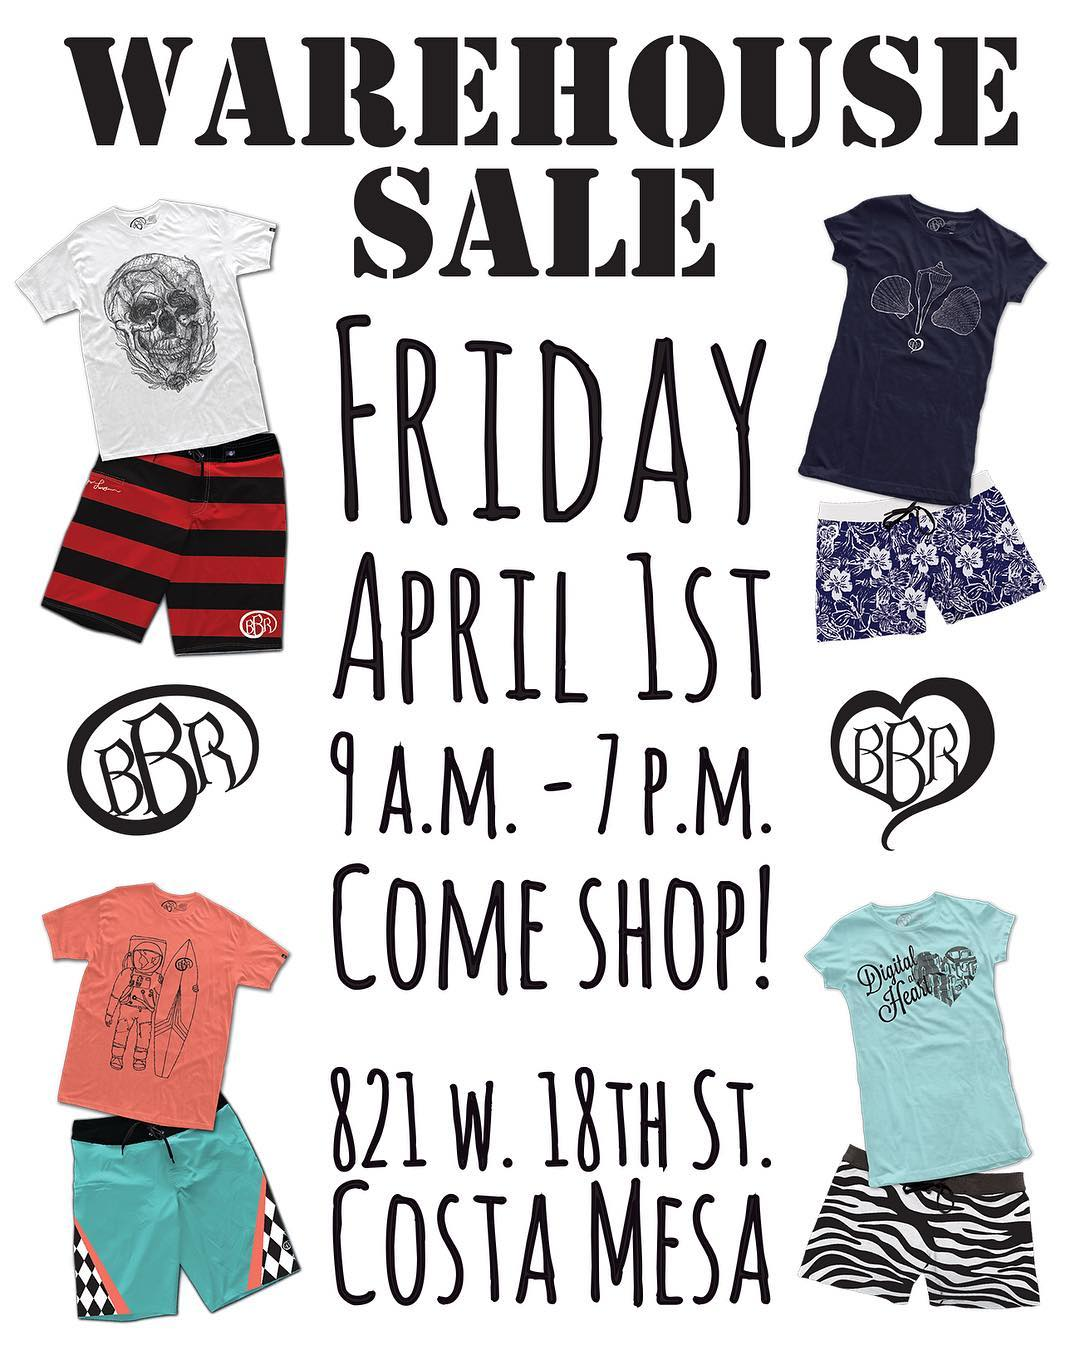 Tomorrow is the BIG DAY!  FRIDAY APRIL 1st from 9:00 am - 7:00 pm Warehouse/Sample Sale at Corporate Office: 821 W 18th Street Costa Mesa, CA 92627 http://www.bbrsurf.com  #bbr #bbrsurf #bbrsurfwear #buccaneerboardriders #warehousesale #samplesale...